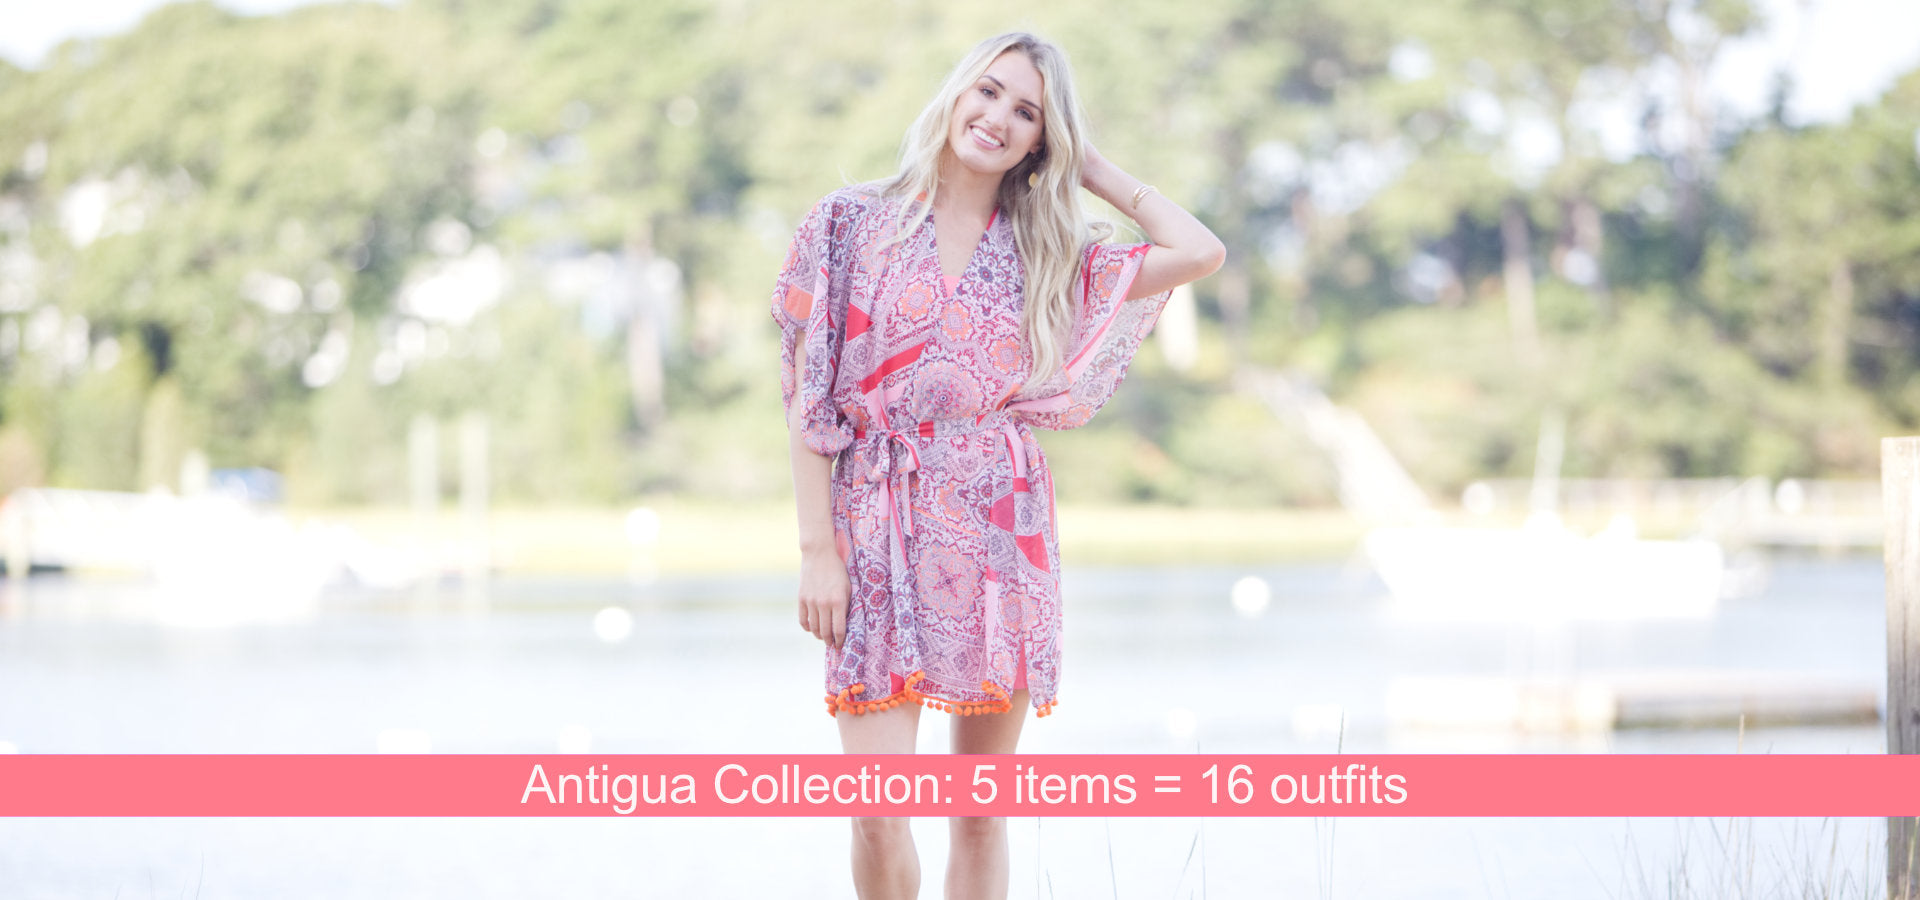 Antigua Collection: 5 items = 16 outfits